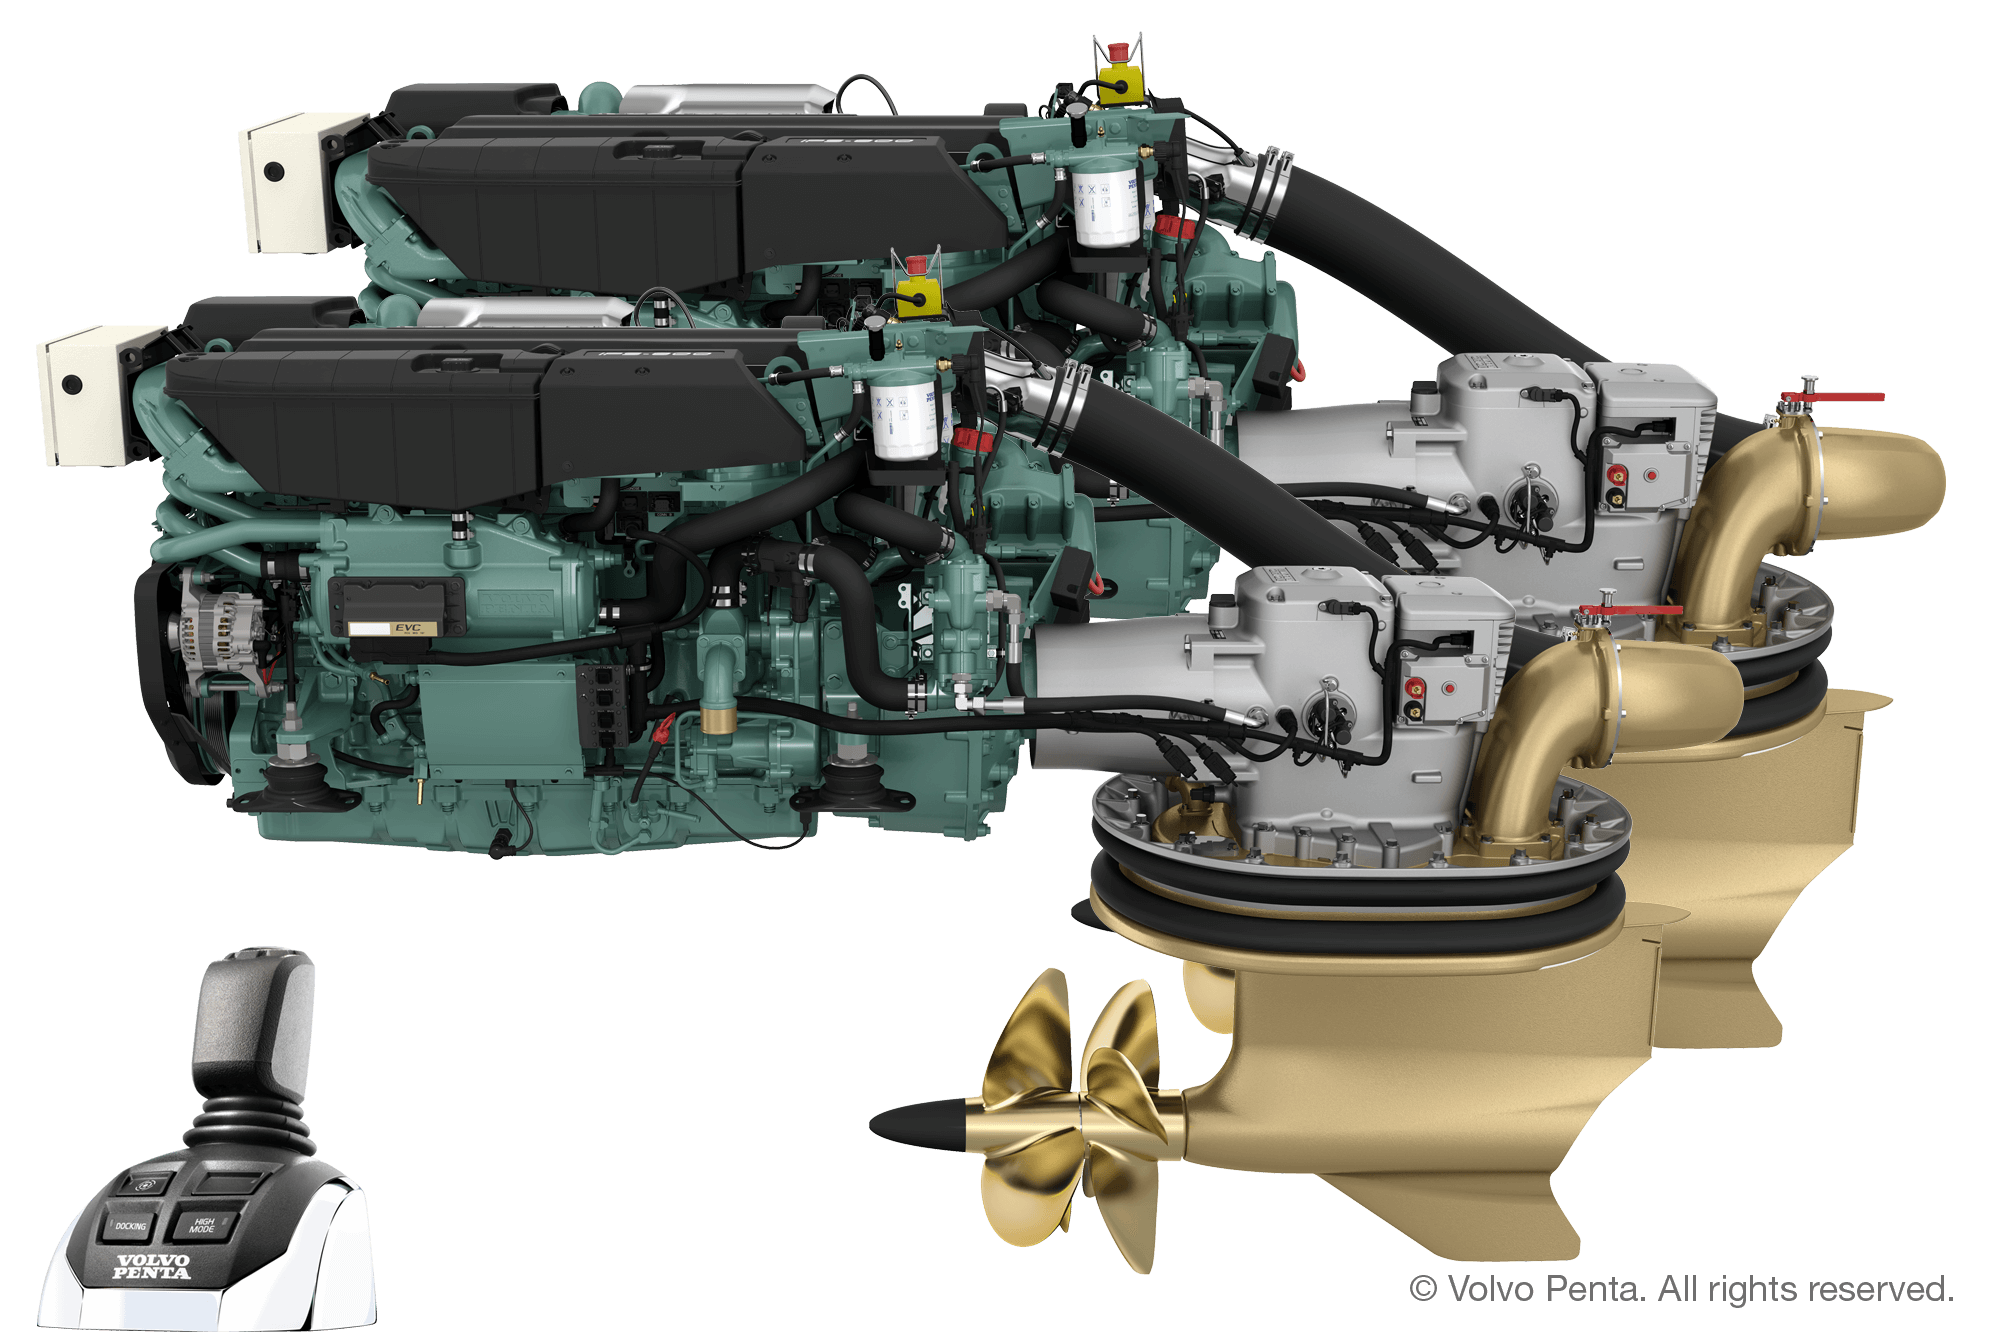 Sealine_C530_2_Volvo_Penta_IPS700-Pod_drive_including_joystick_control_with_propeller_N3.png